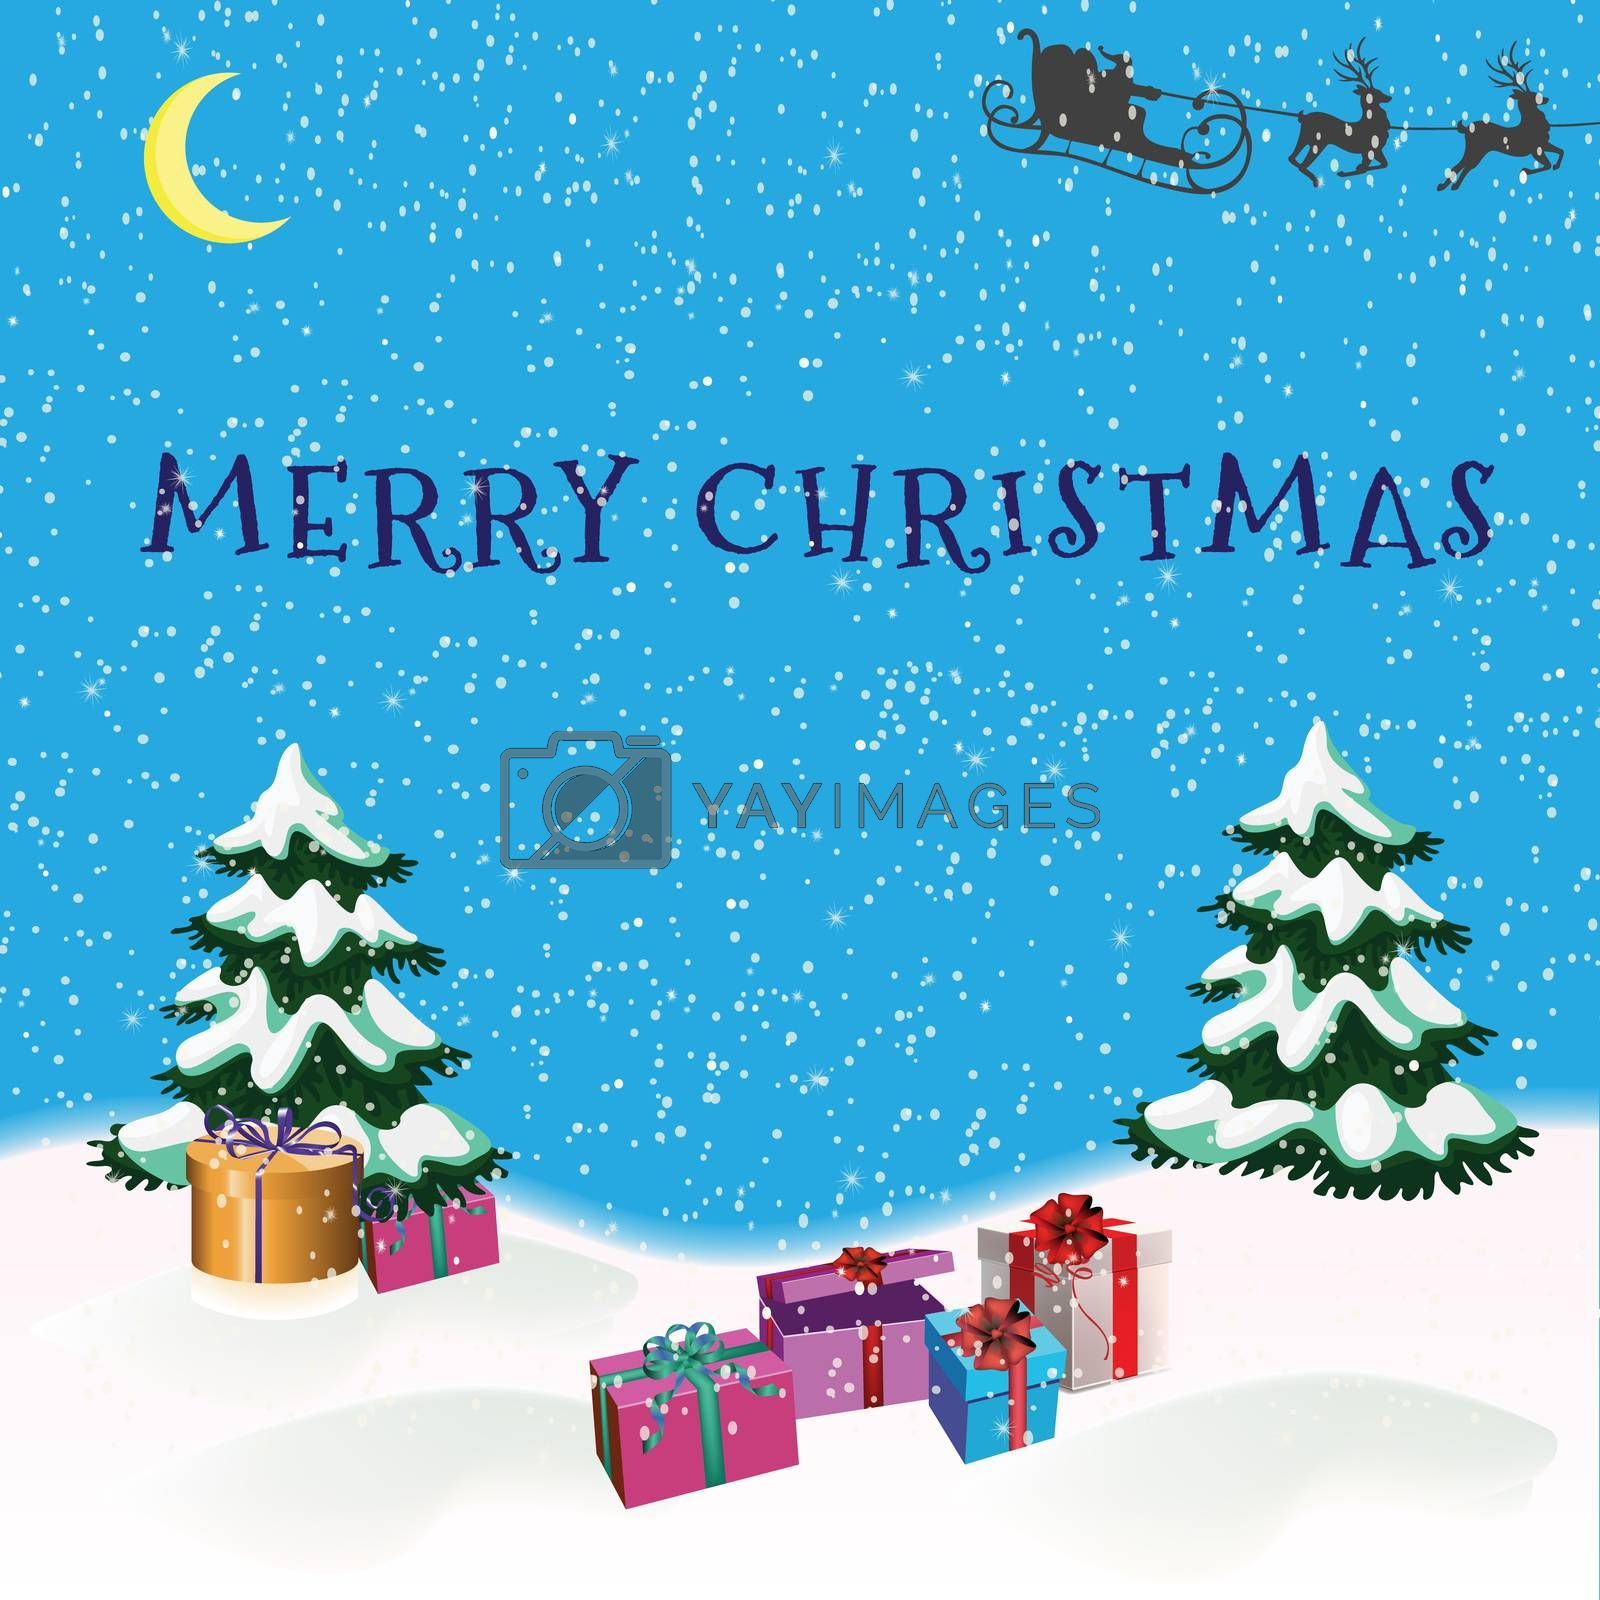 Christmas picture with Christmas trees, Santa Claus and gifts under Christmas trees